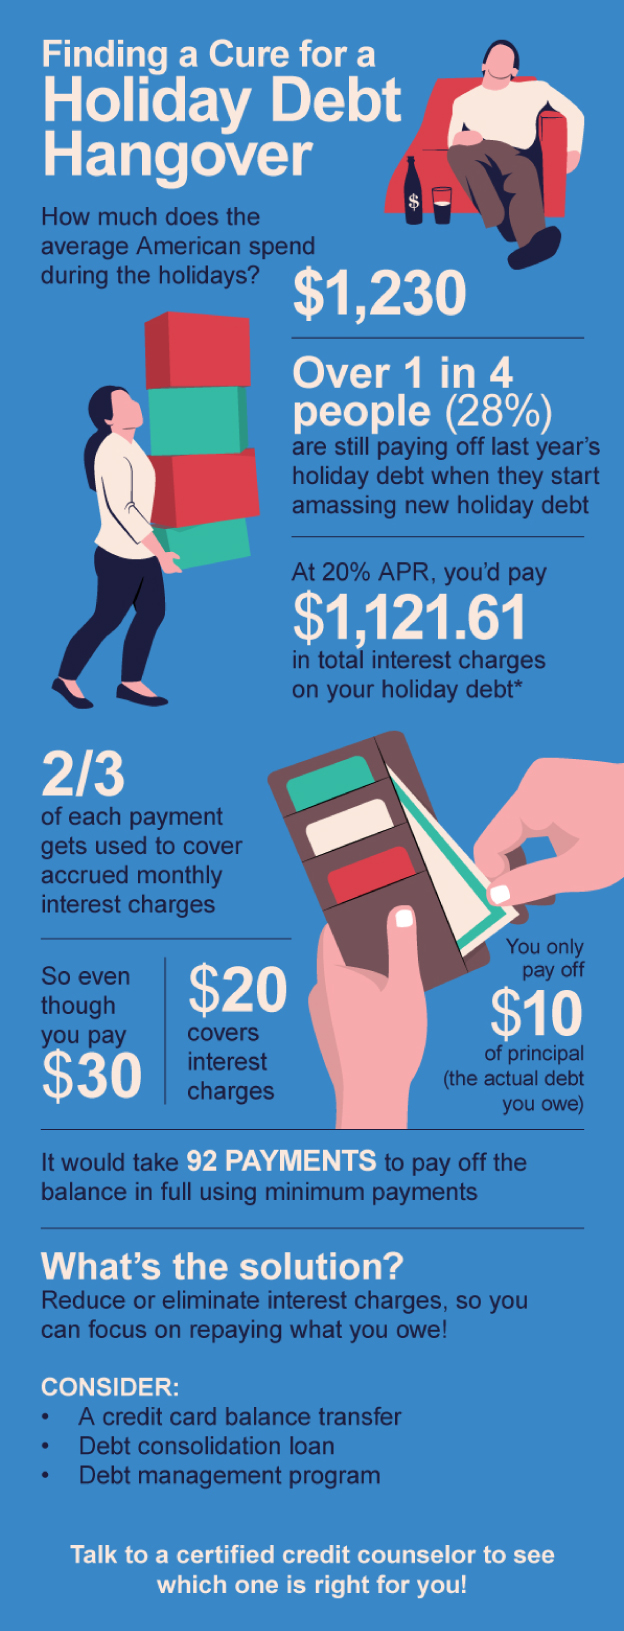 Finding a Cure for a Holiday Debt Hangover infographic